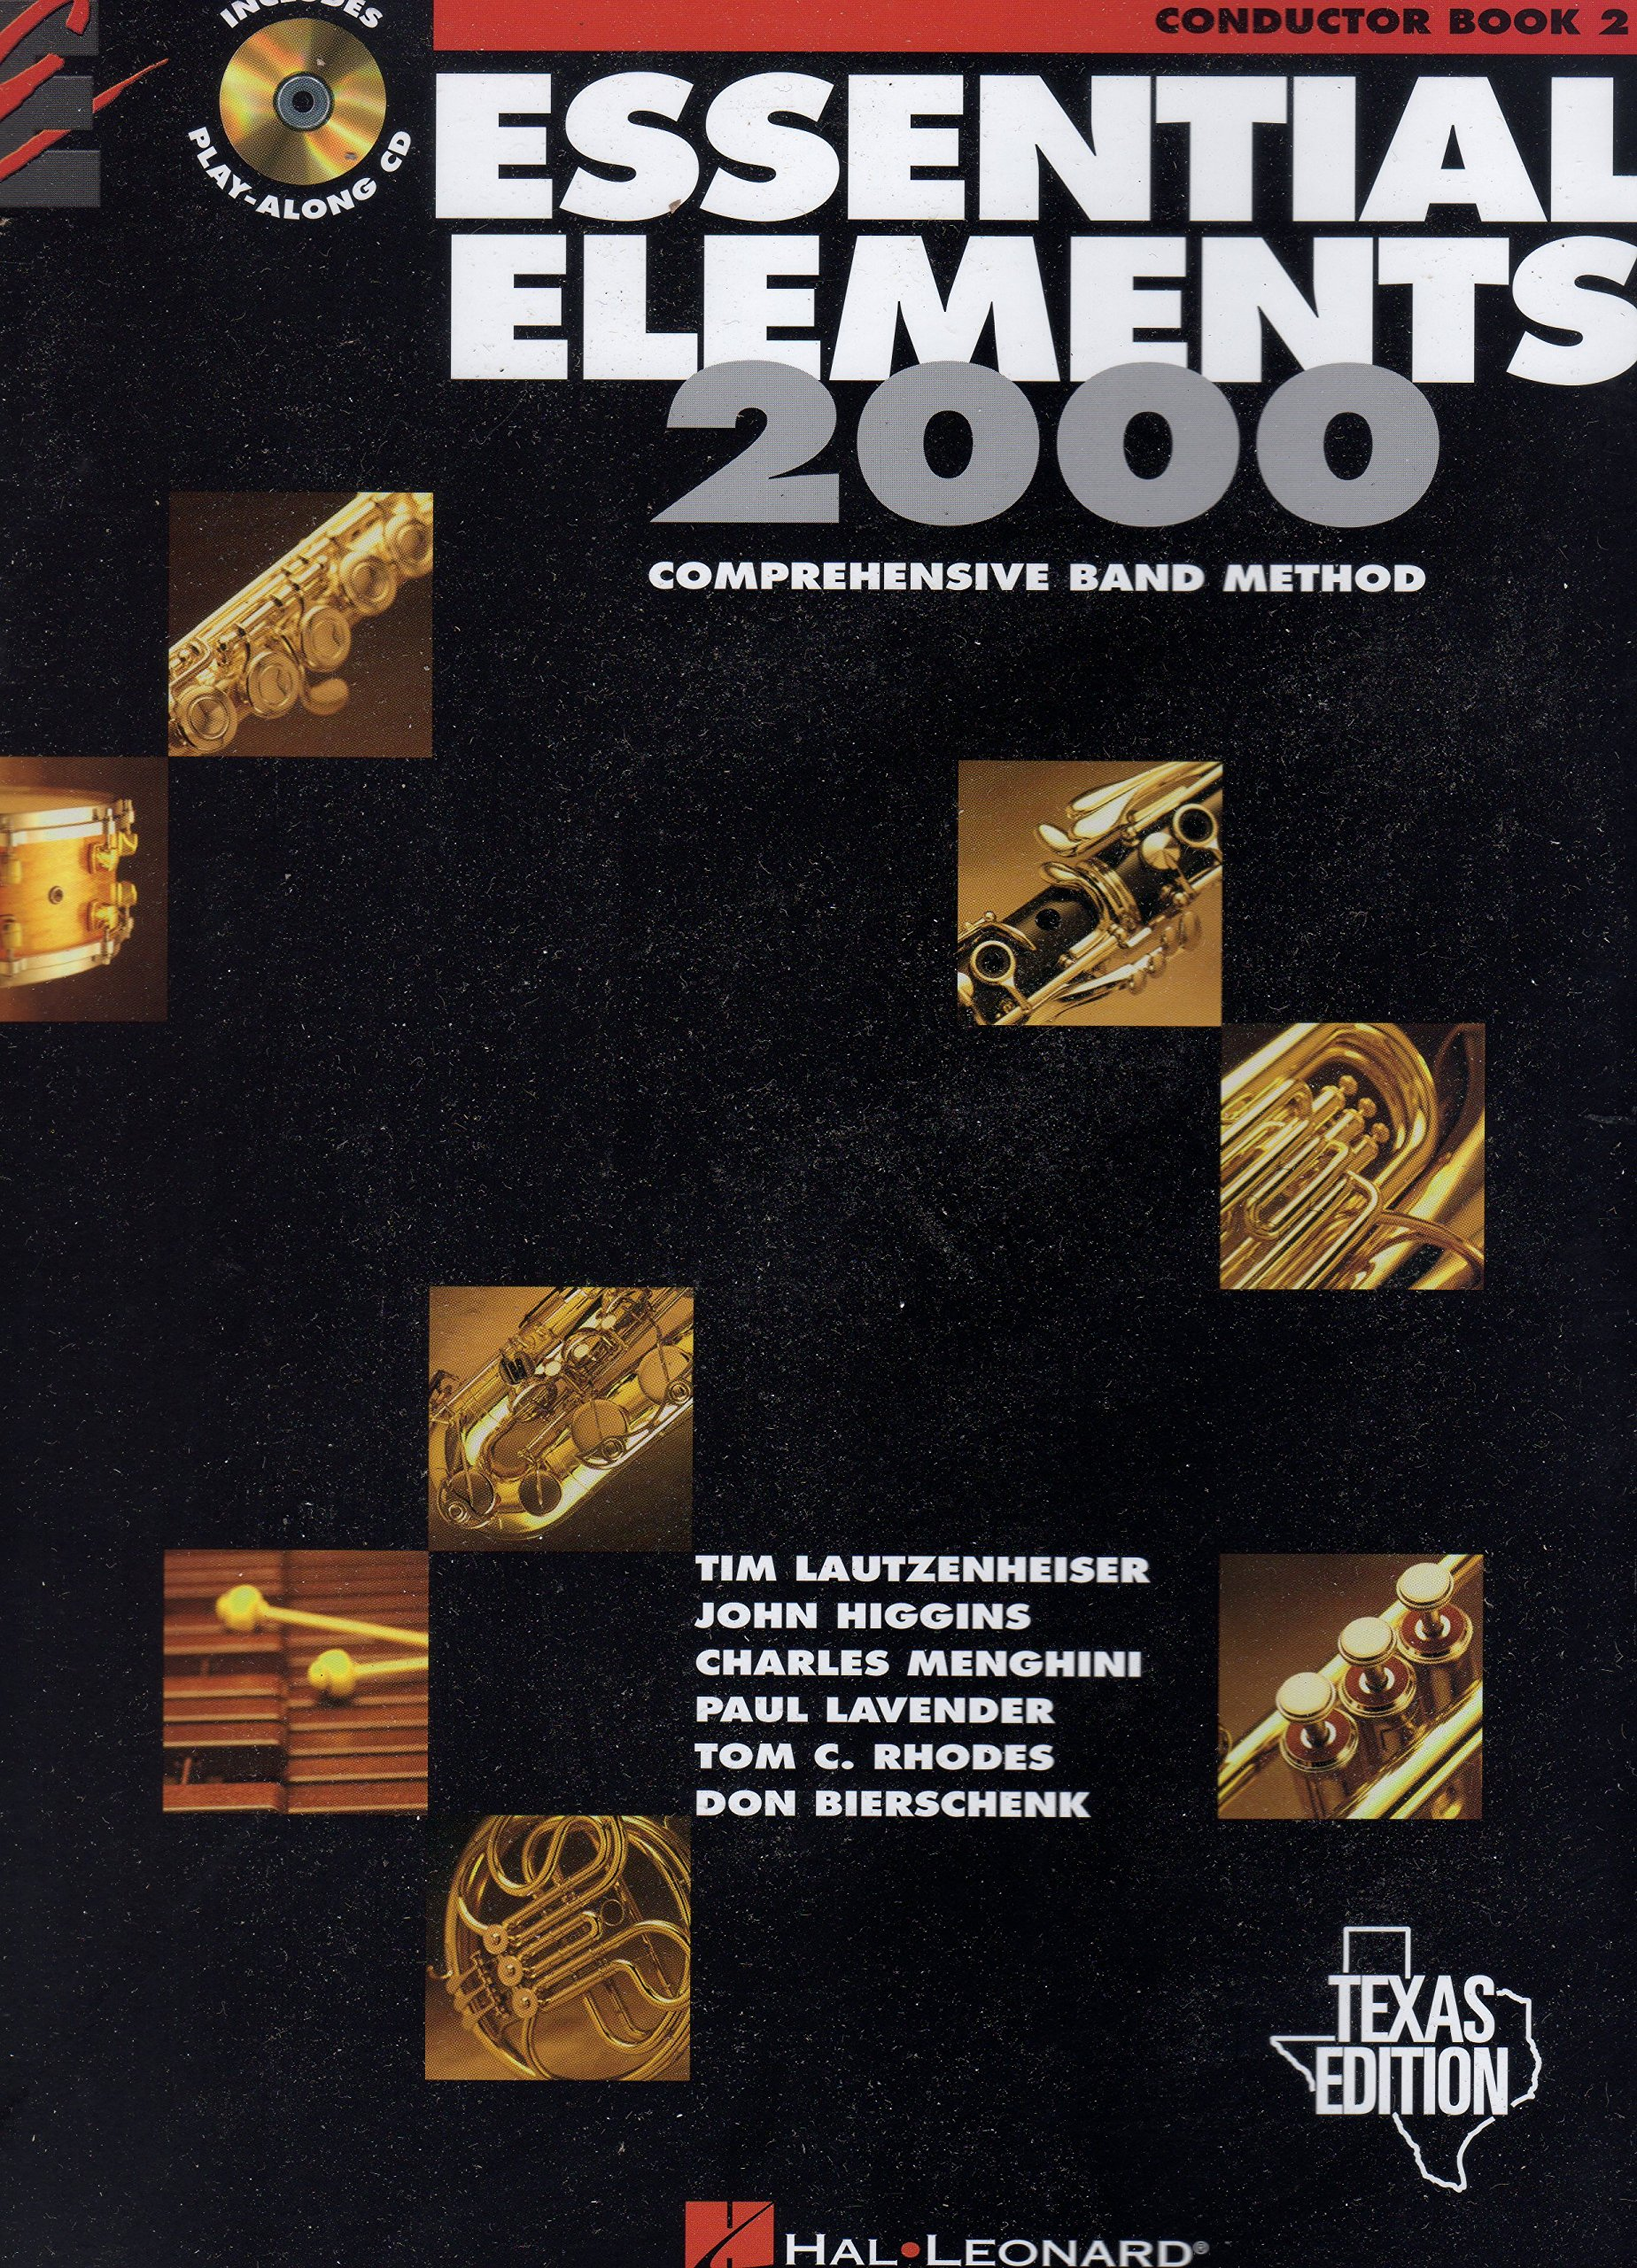 Download Essential Elements 2000: Comprehensive Band Method Conductor Book 2 (Texas Edition) pdf